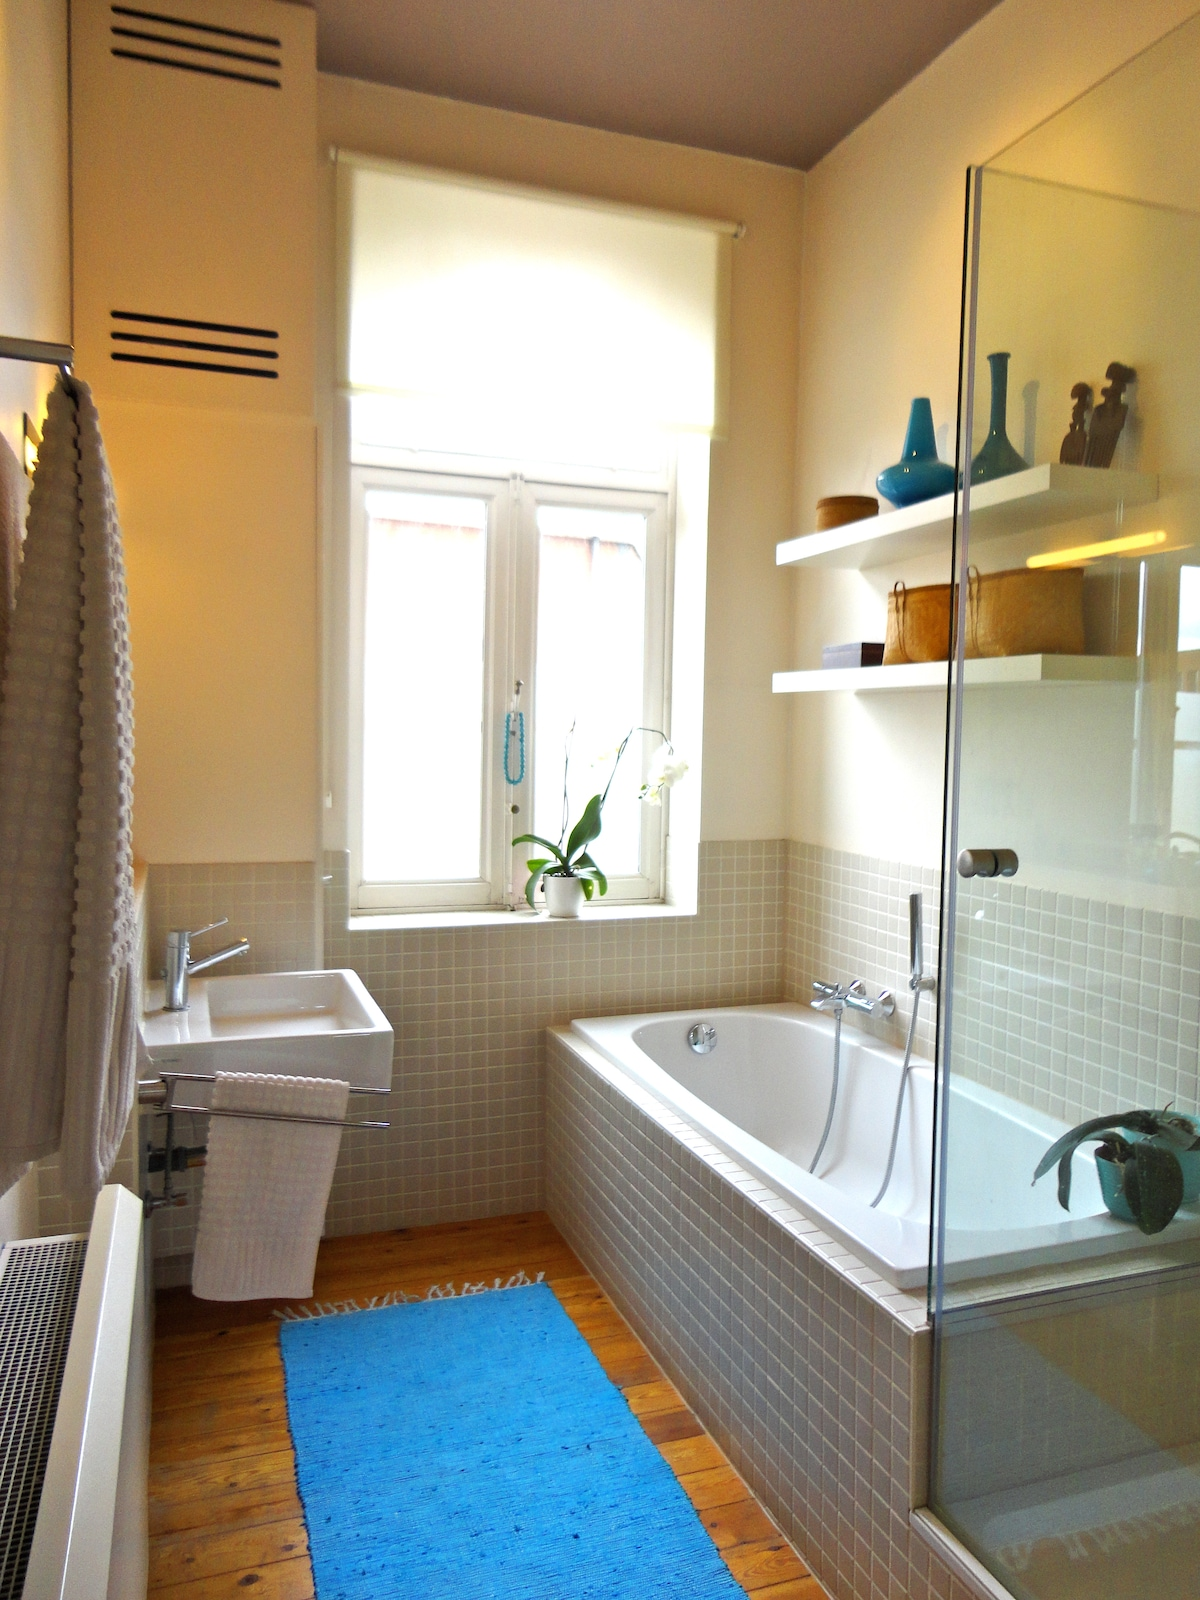 bathroom with shower and bath - separate toilet